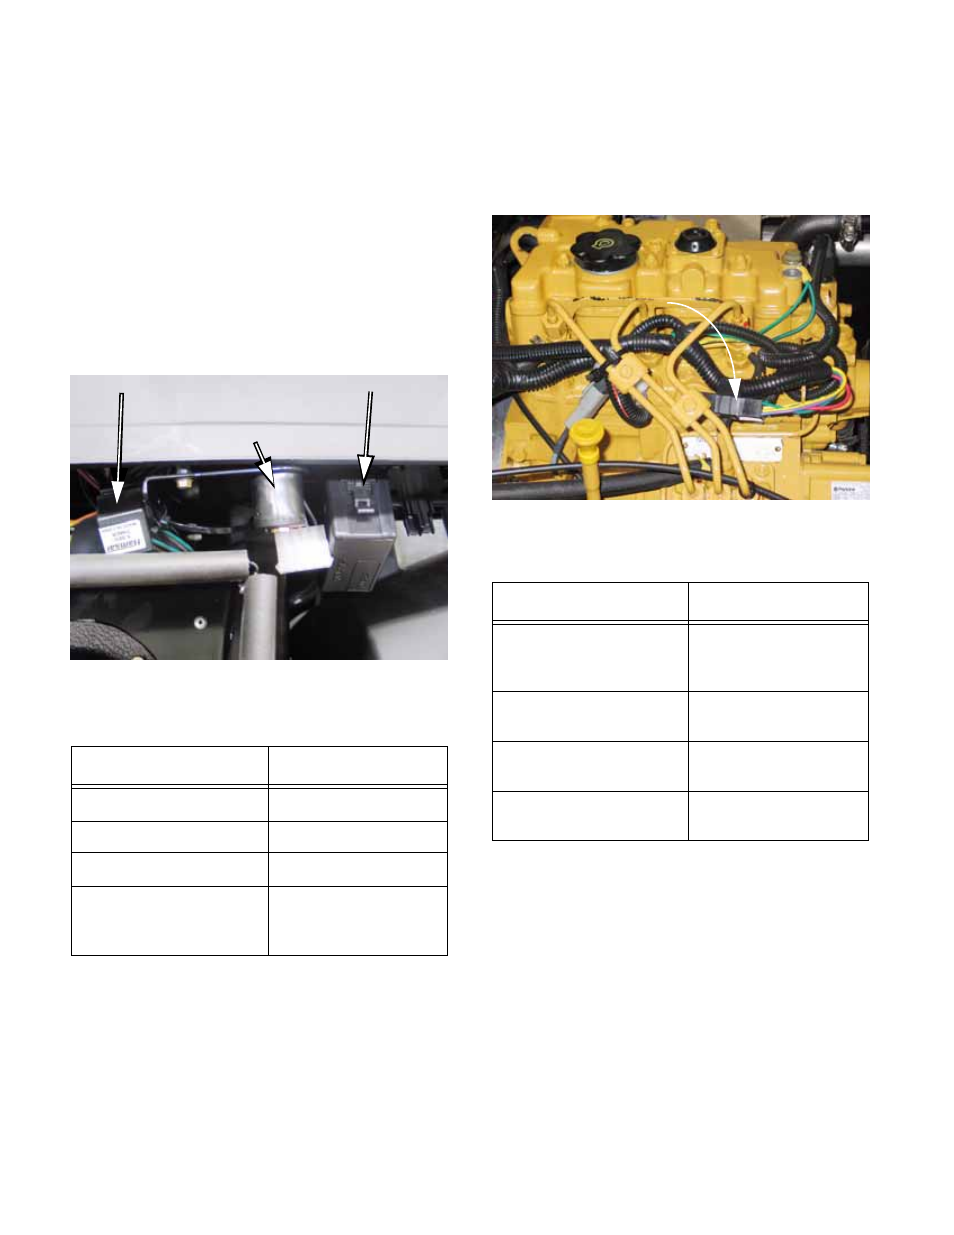 Chapter 9 - electrical | Cub Cadet 4 x 4 Volunteer User Manual | Page 282 /  328